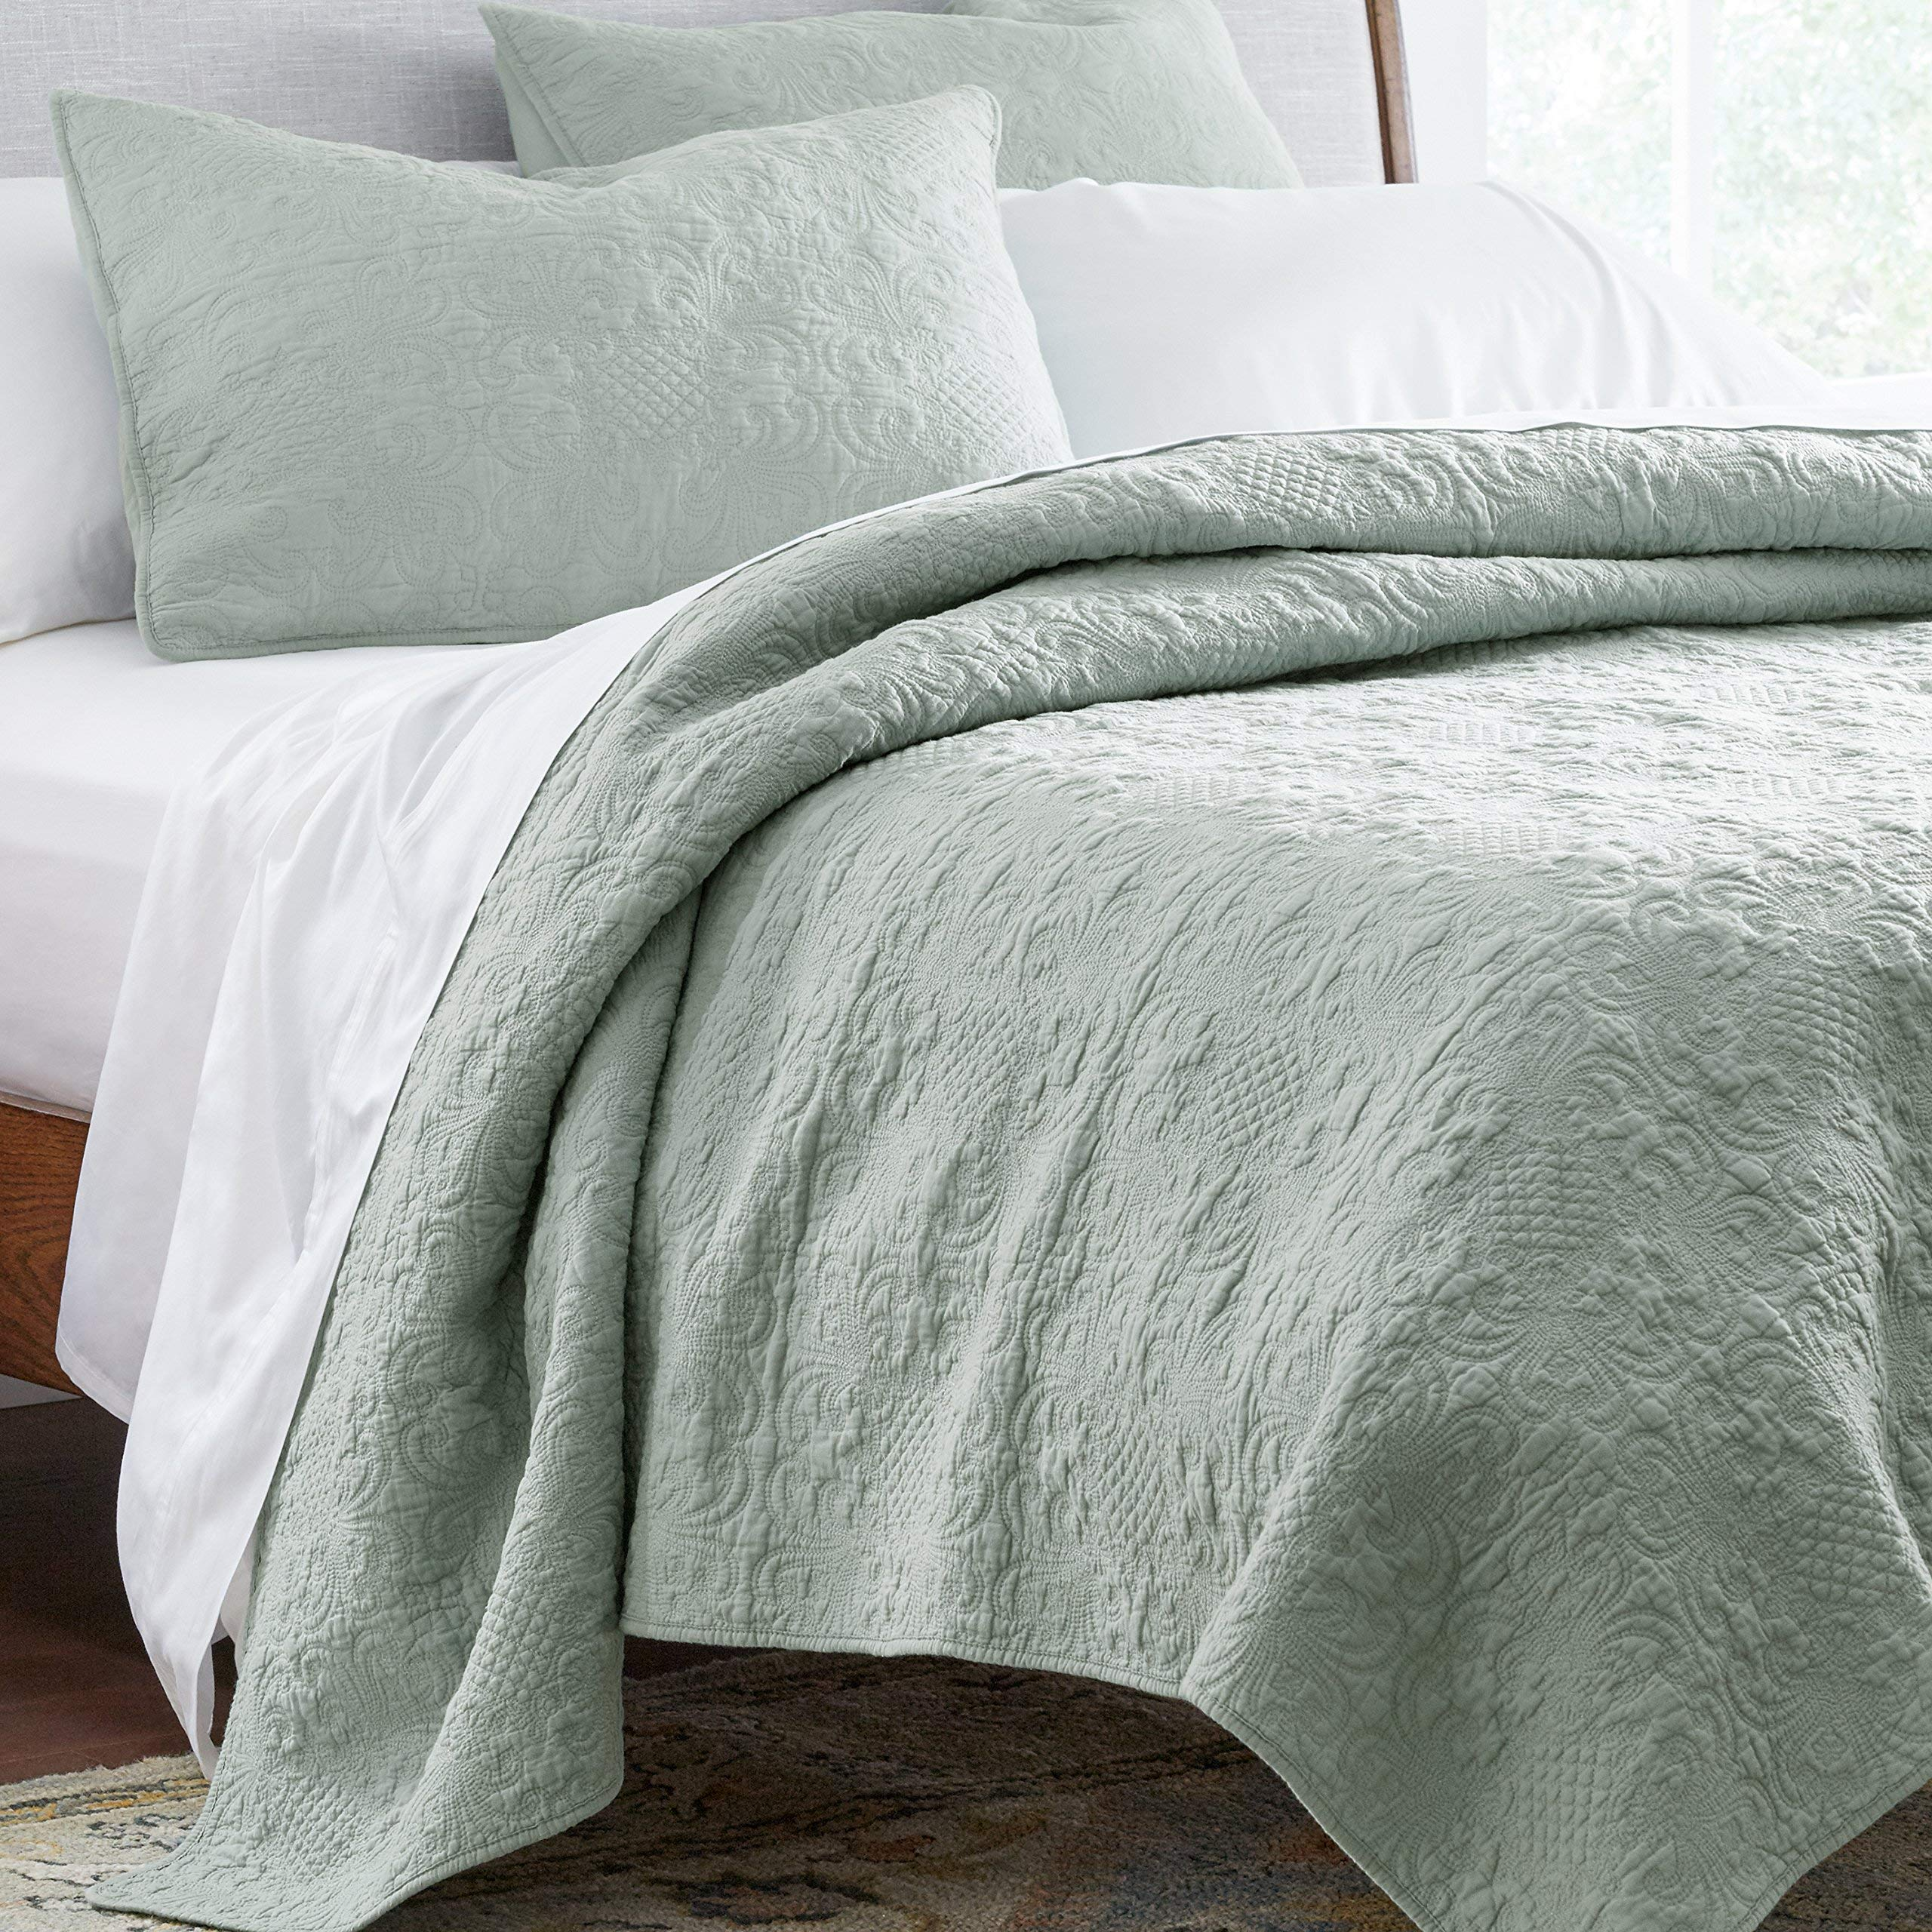 Stone & Beam Vintage-Inspired Floral Embroidery Coverlet Set, Full / Queen, 90'' x 90'', Teal